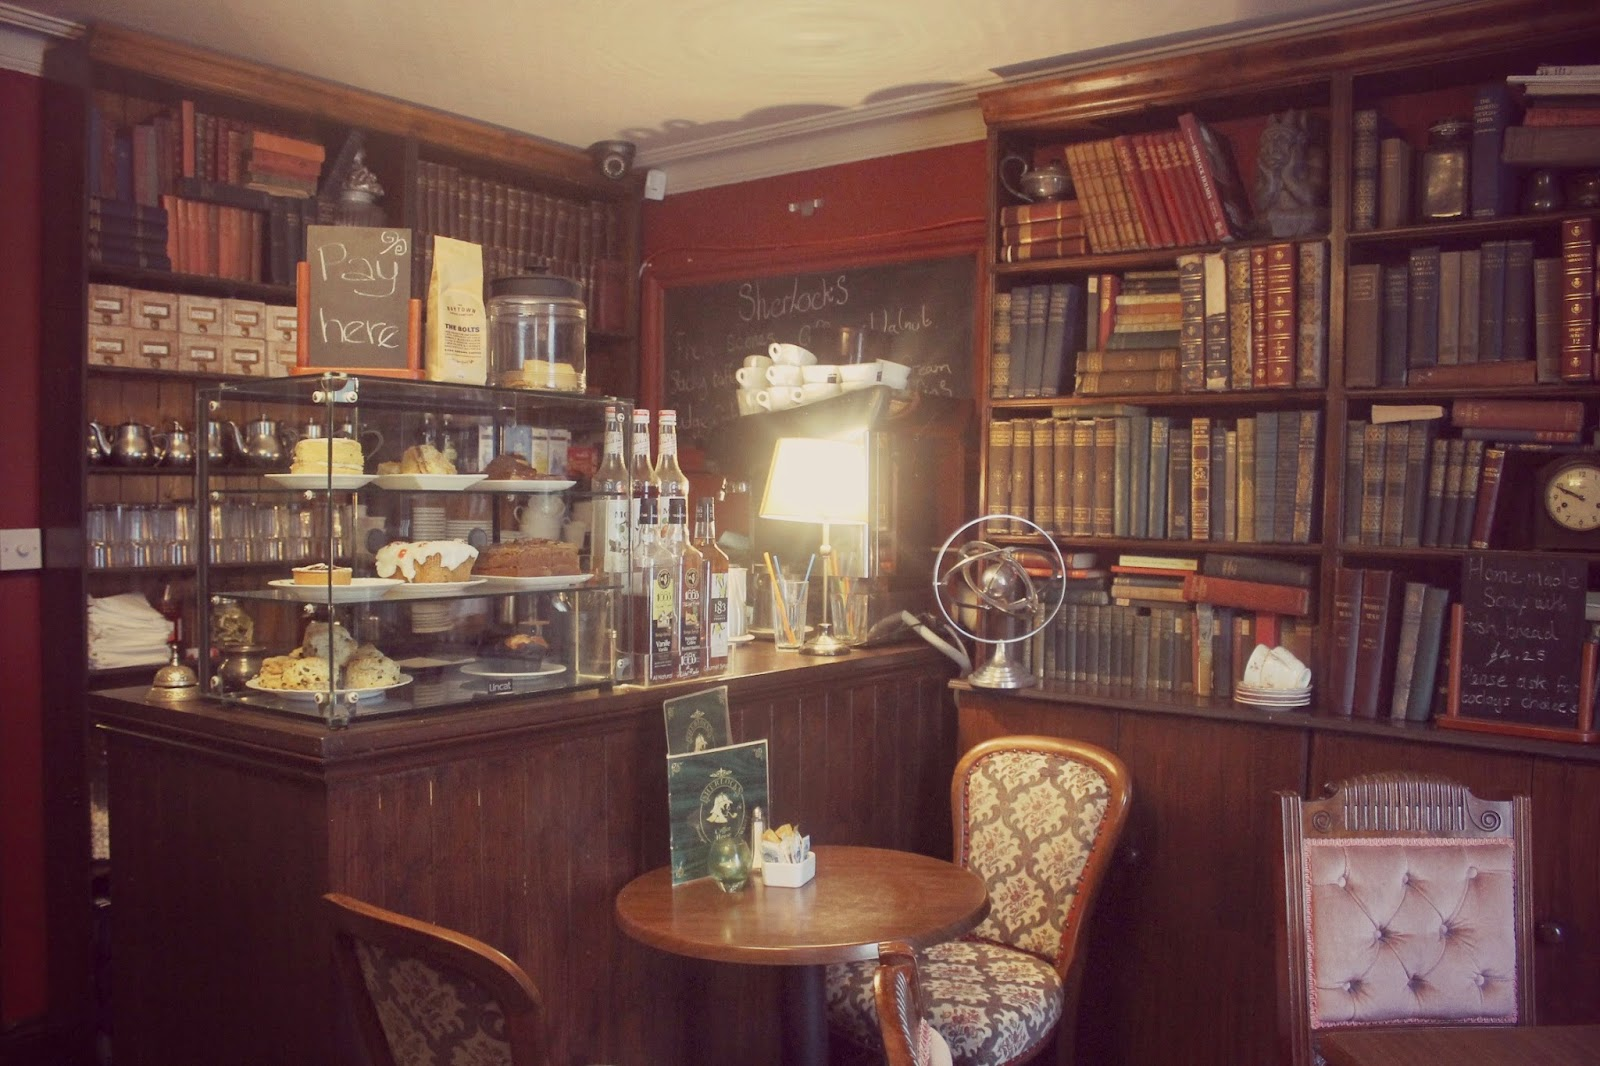 Sherlock themed cafe